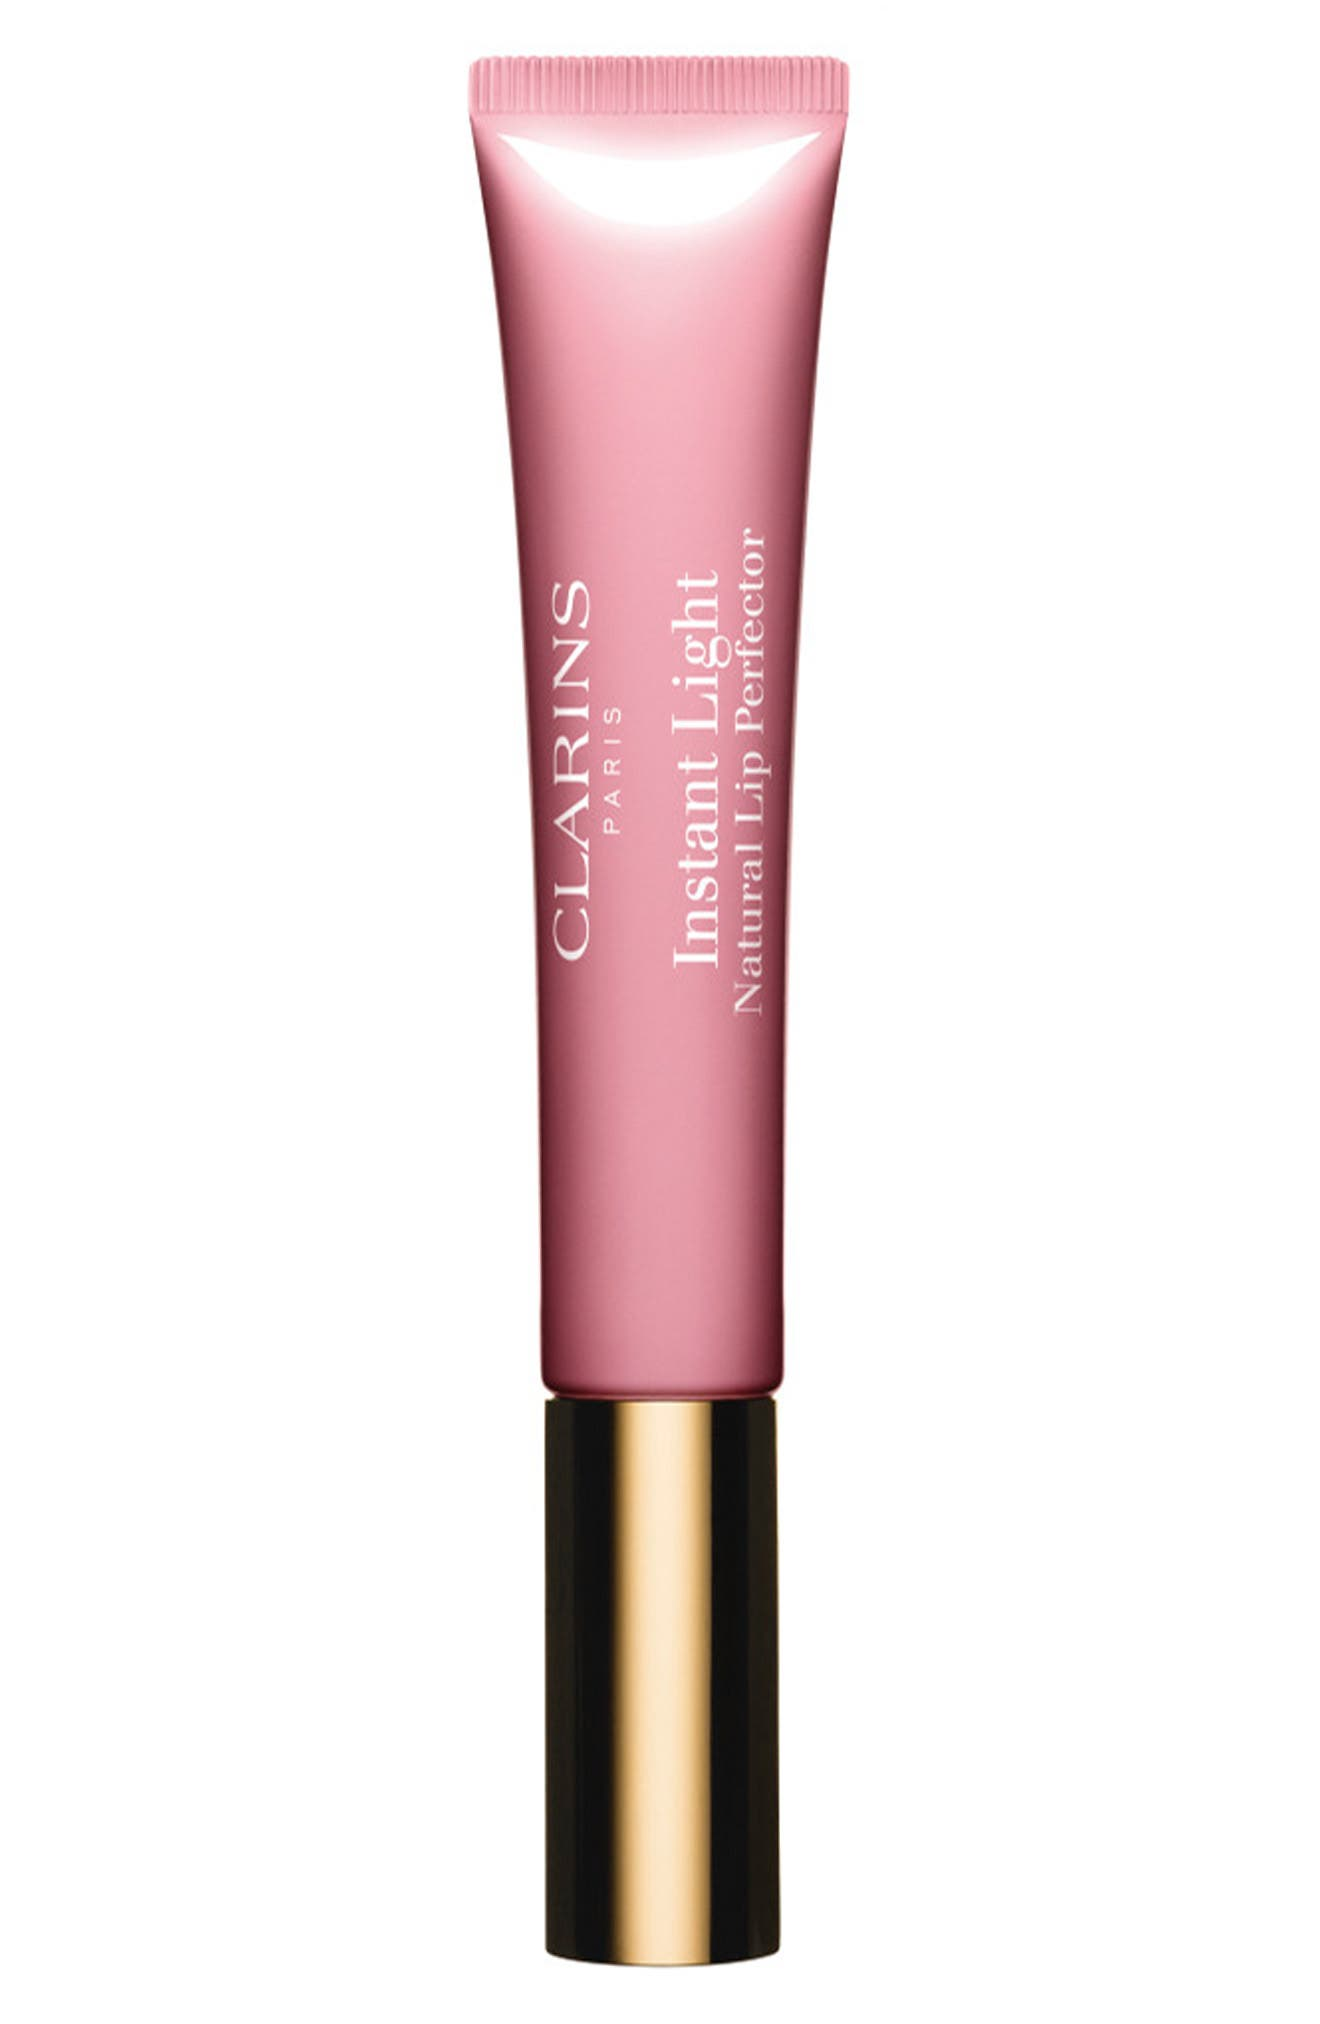 Clarins 'Instant Light' Natural Lip Perfector